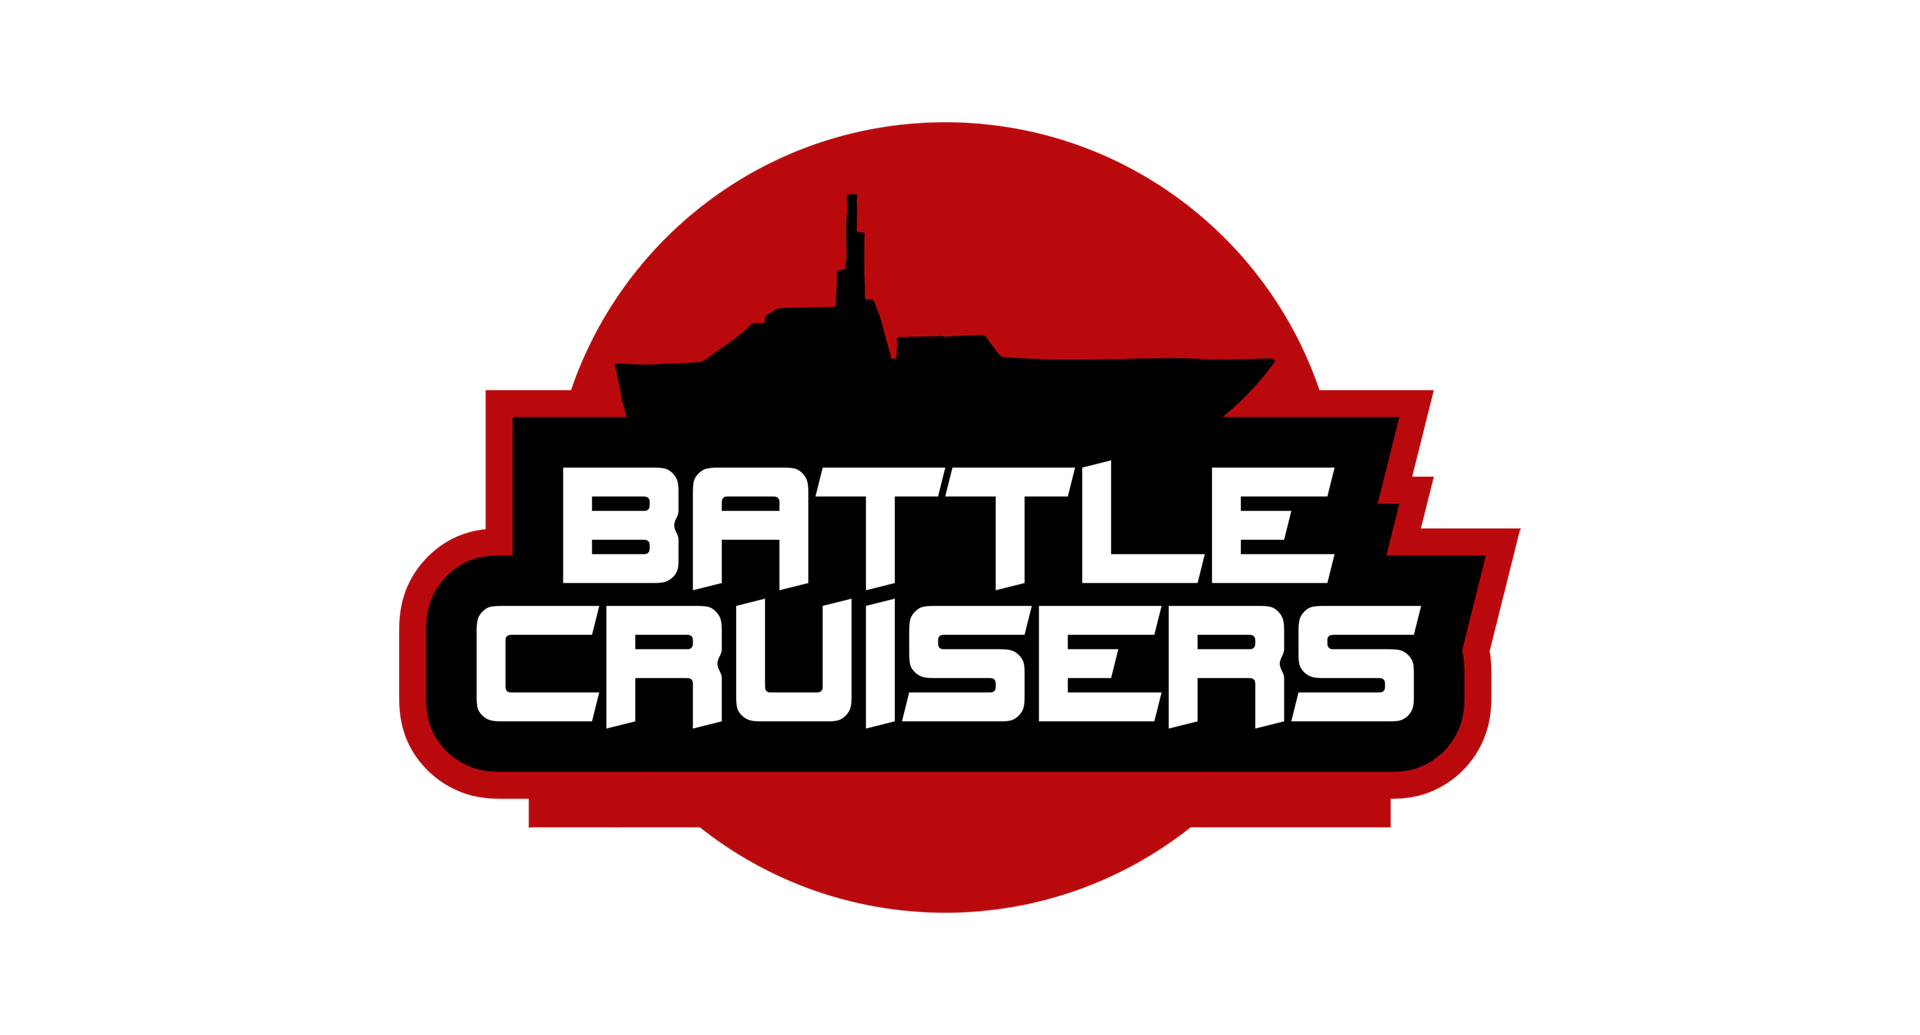 Battlecruisers - RTS game